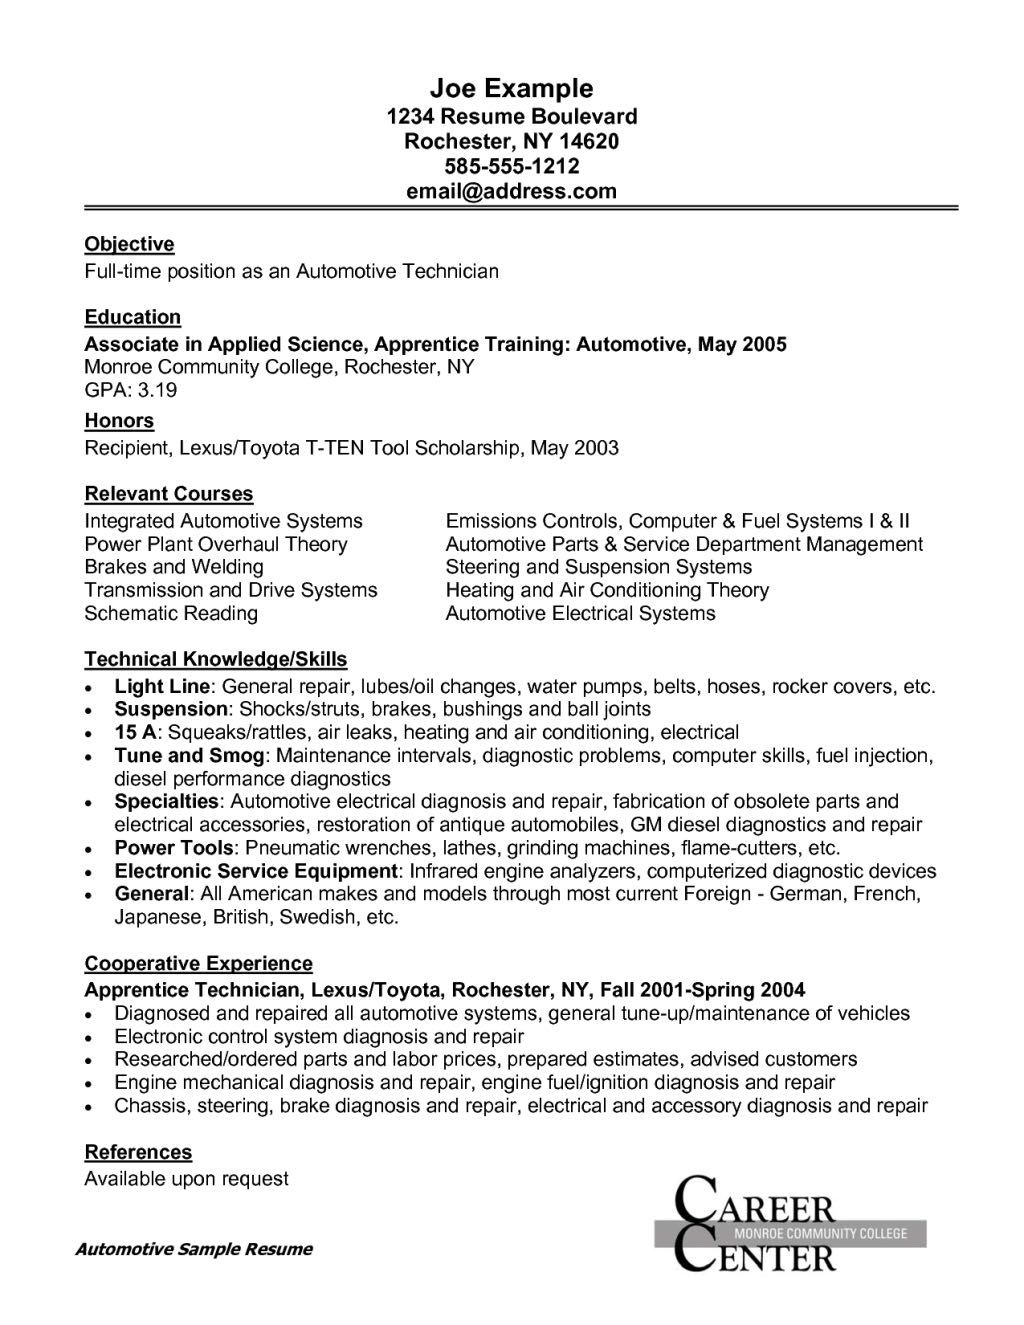 39+ Sample resume character reference available upon request Resume Examples